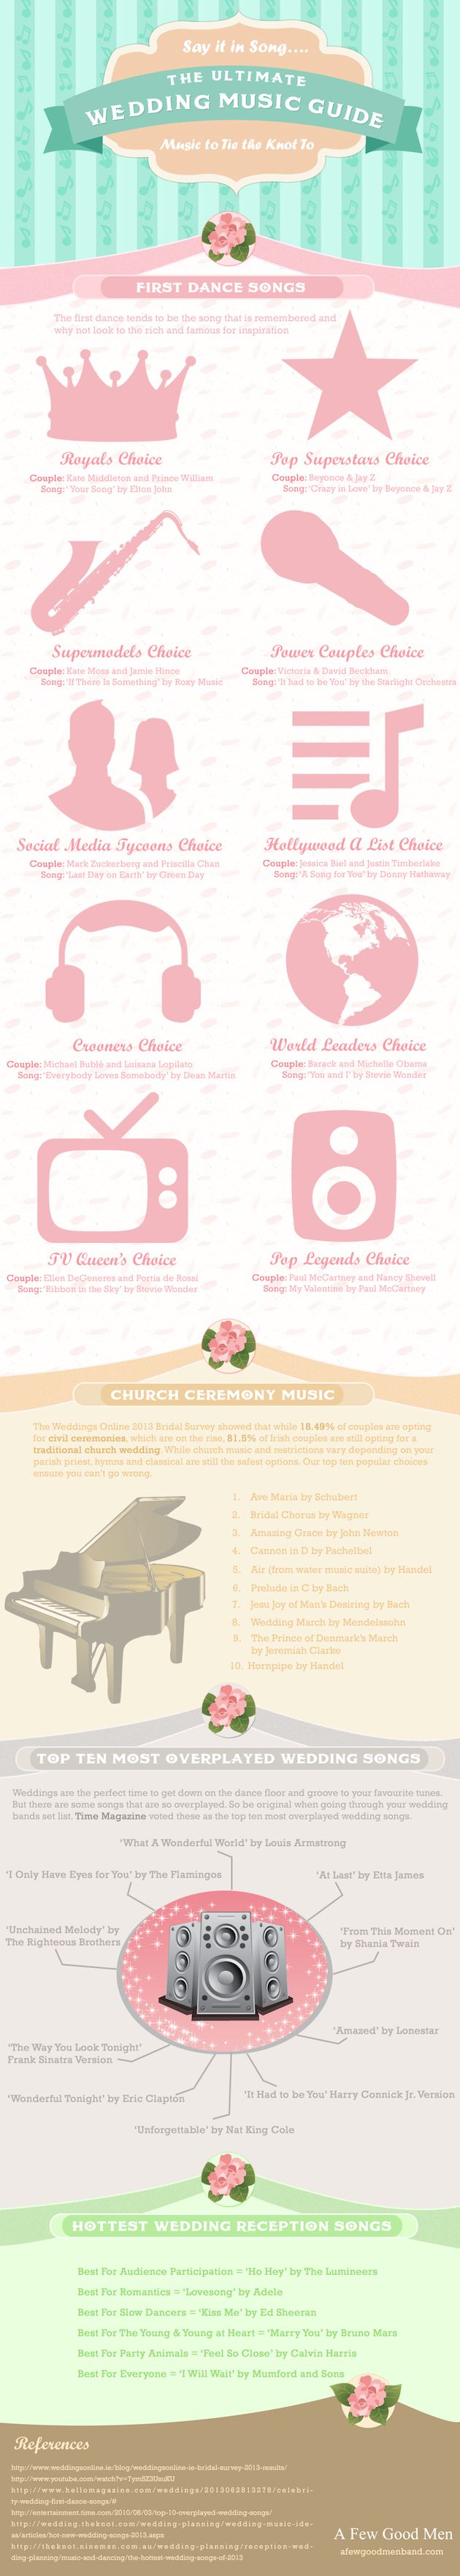 The Ultimate Wedding Music Guide Infographic | Bridal Musings